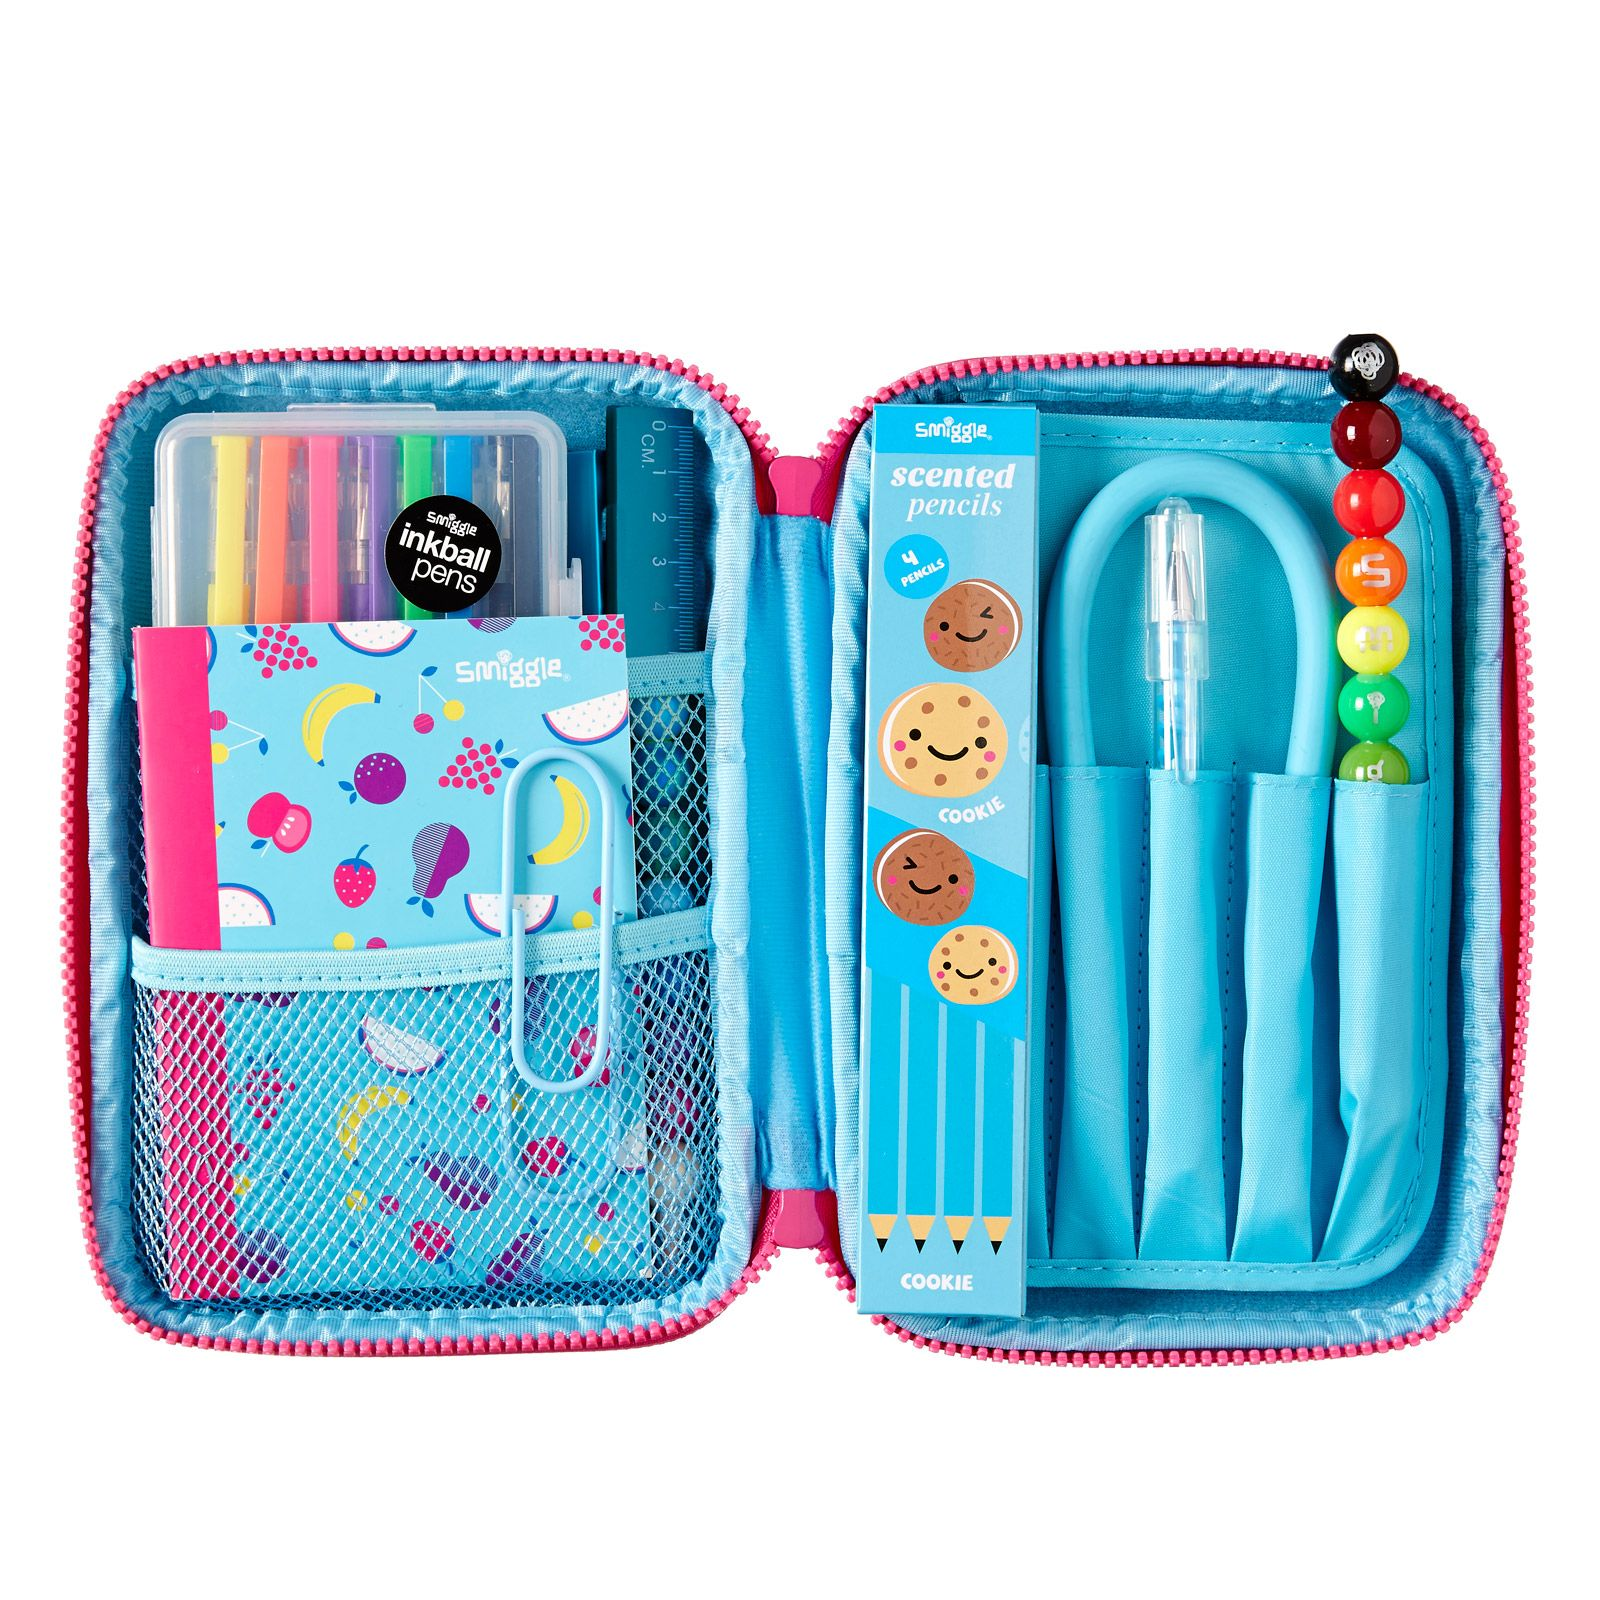 Image for smiggle super gift pack from smiggle school stationery image for smiggle super gift pack from smiggle negle Gallery